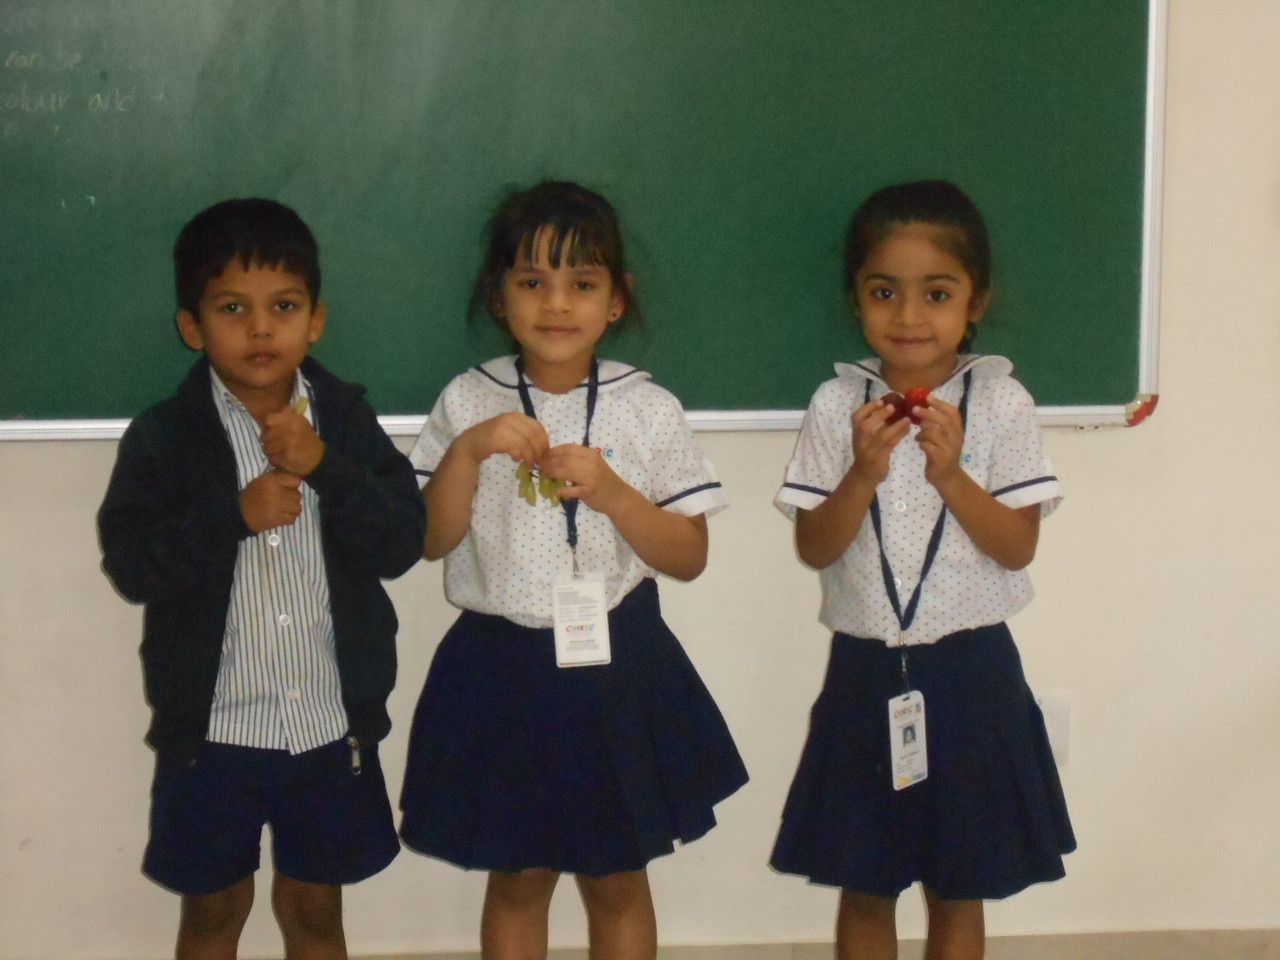 COMMUNICATION SKILLS AND COGNITIVE DEVELOPMENT THROUGH SHOW AND TELL